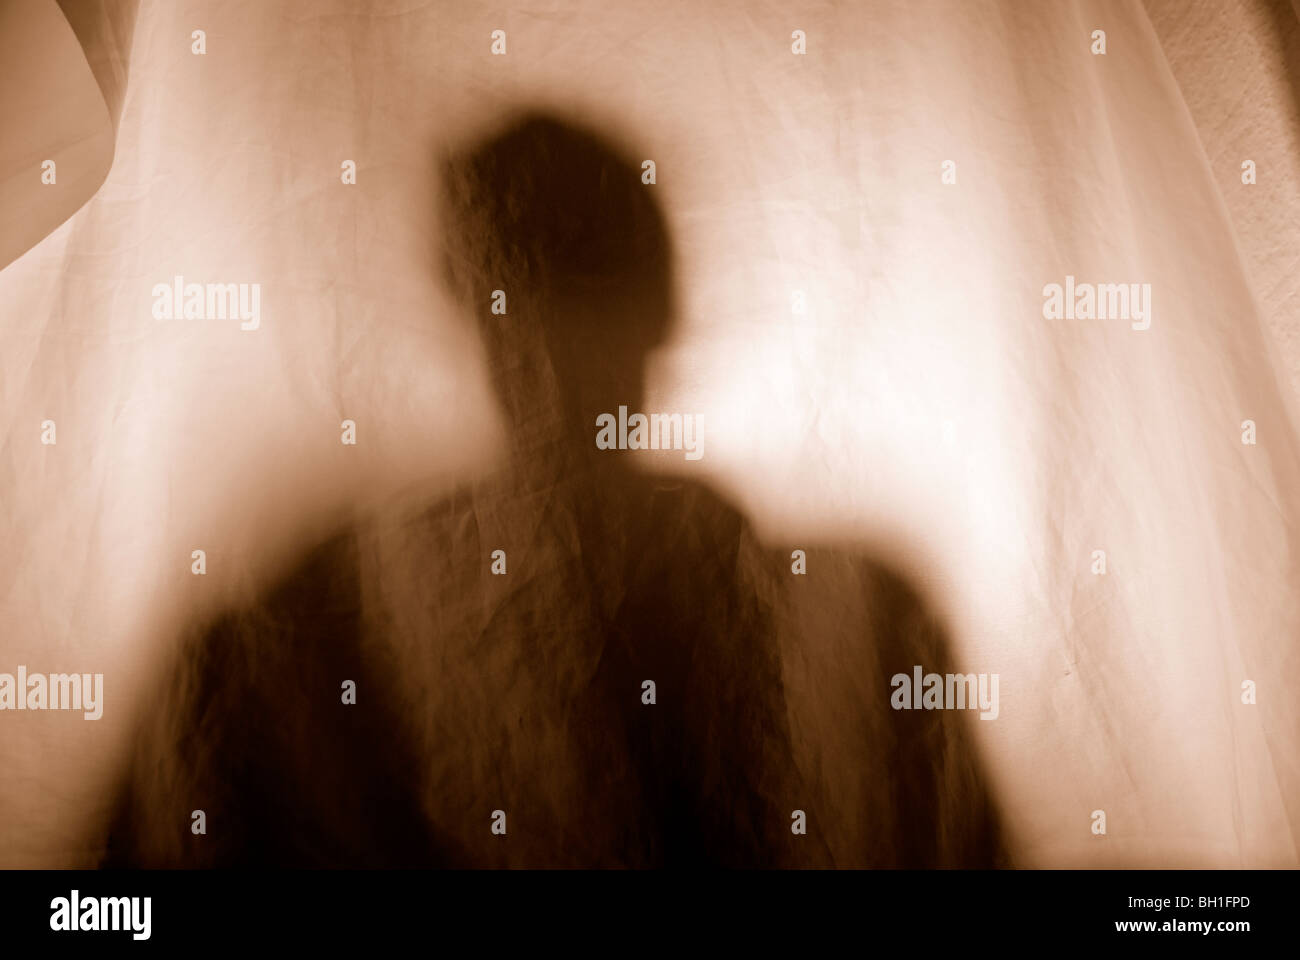 OMINOUS SILHOUETTE - Stock Image